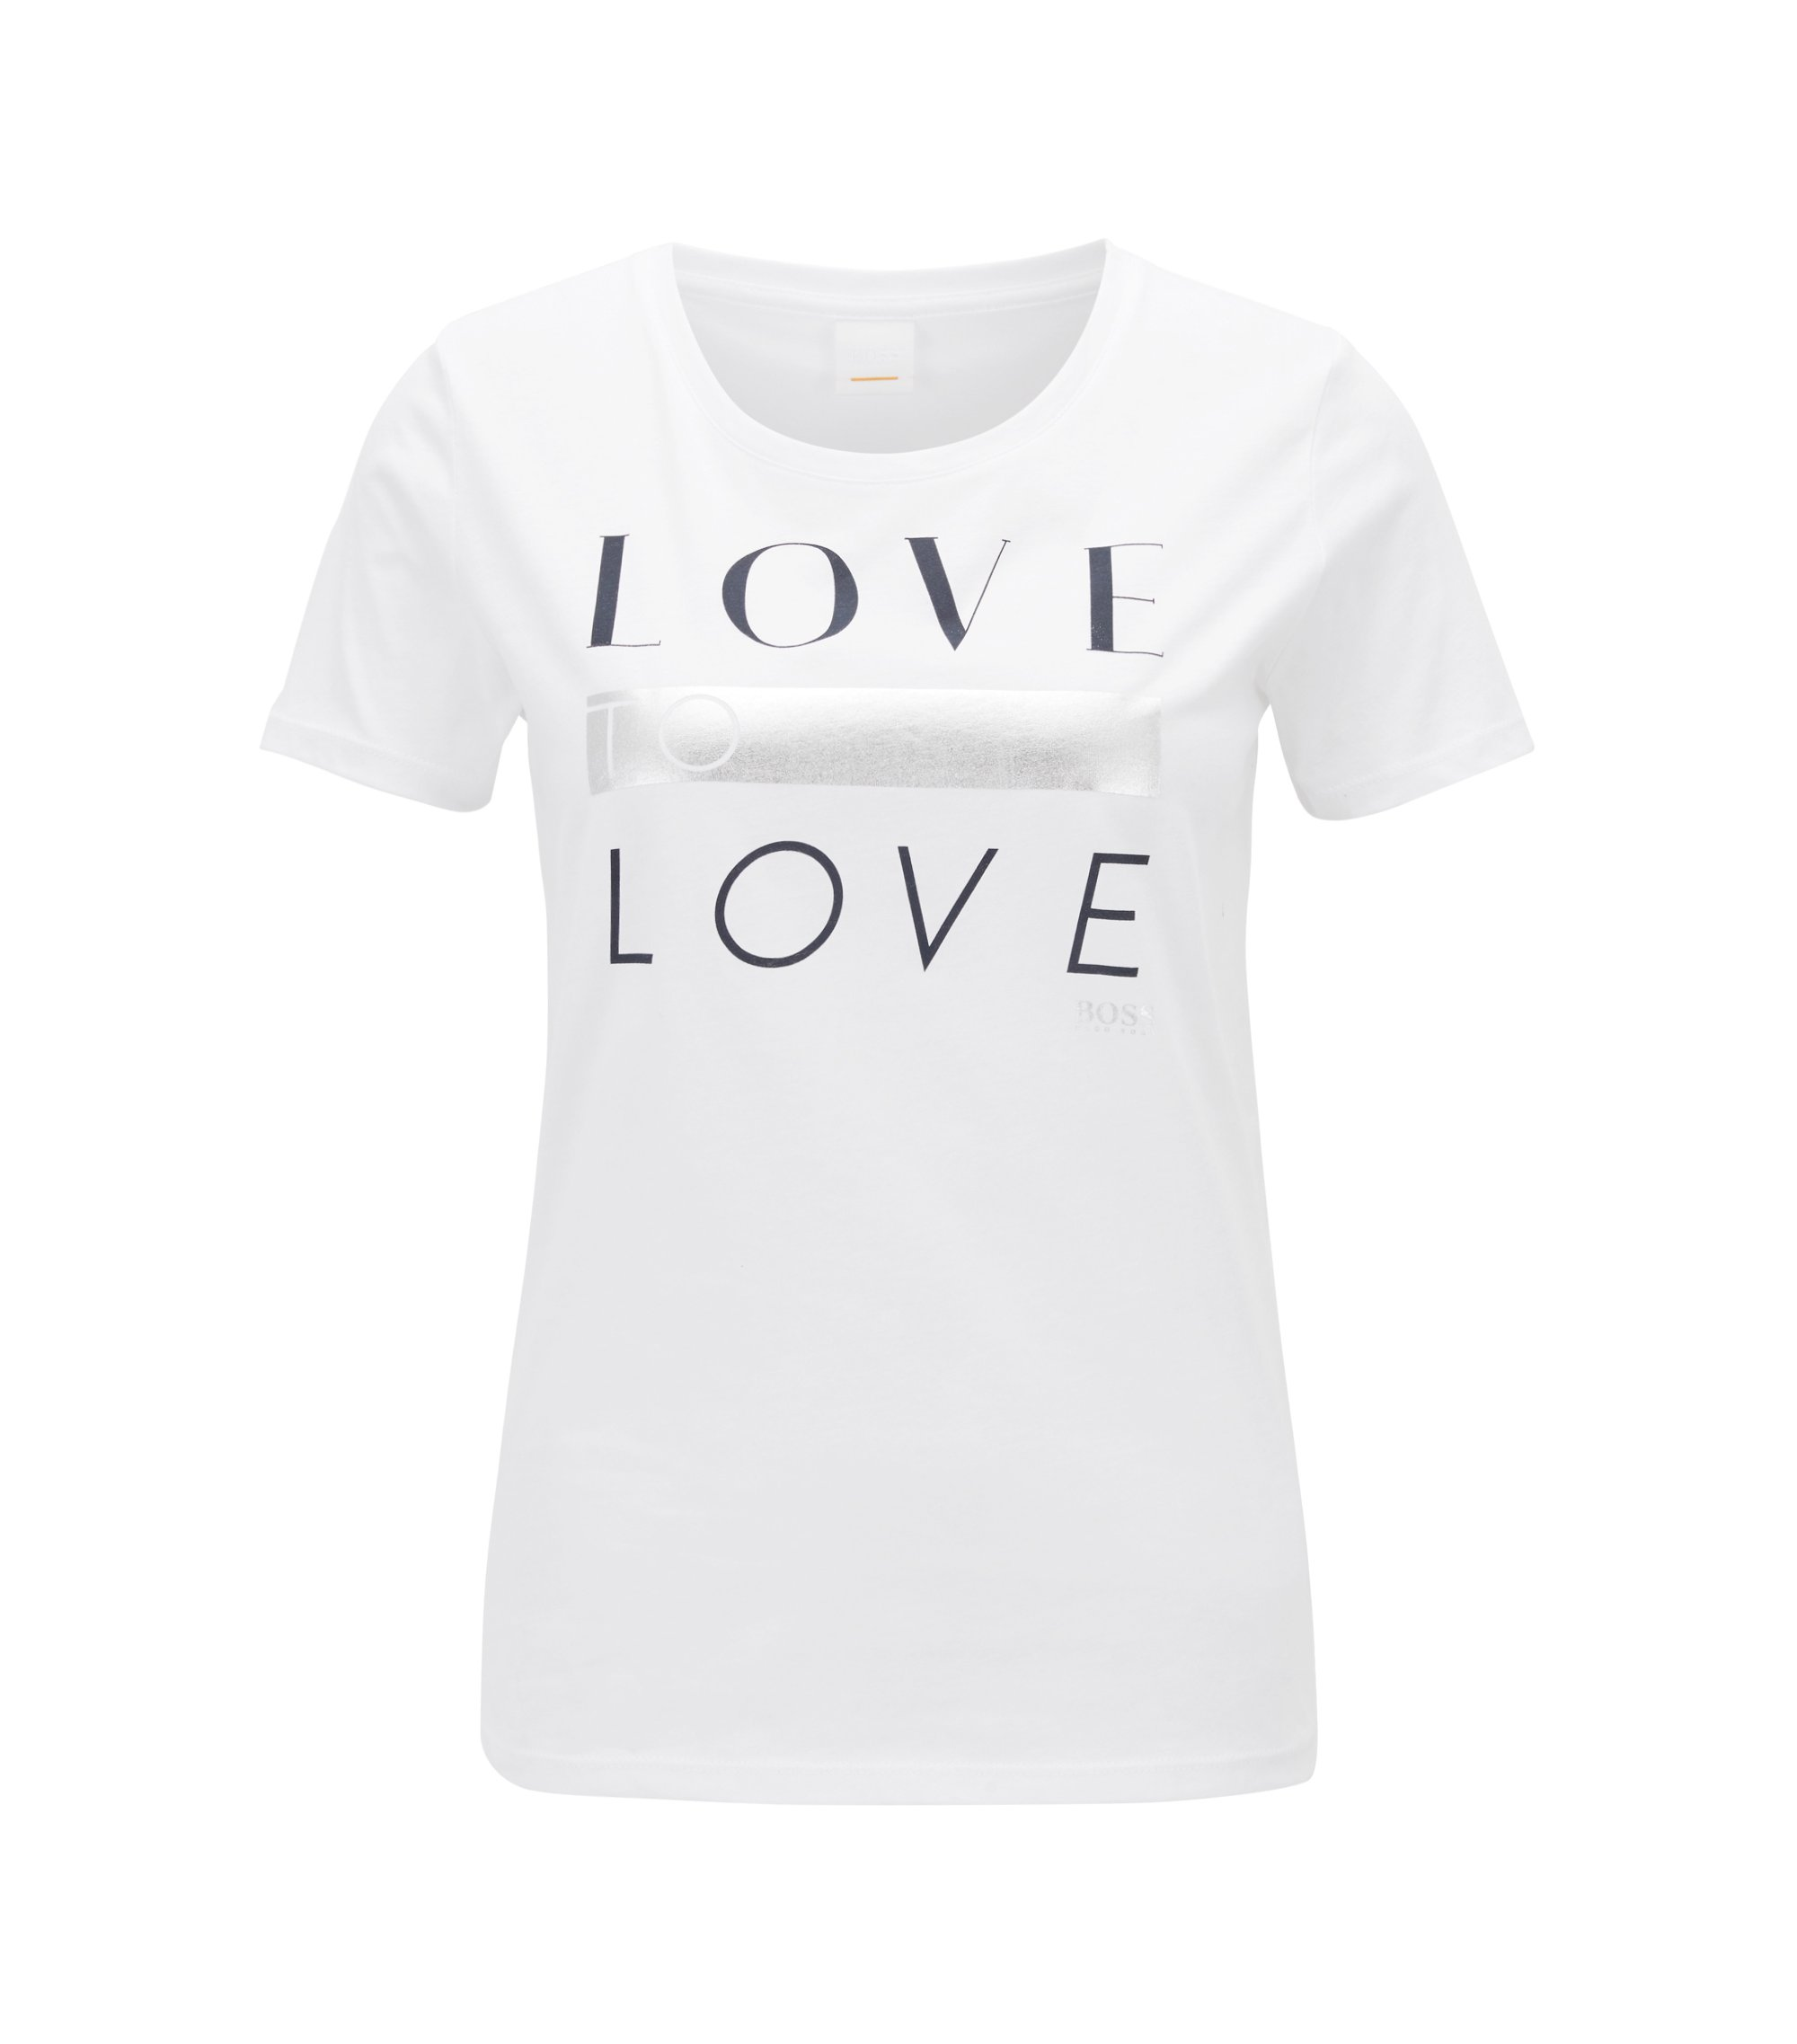 Cotton-jersey T-shirt with printed slogan, White